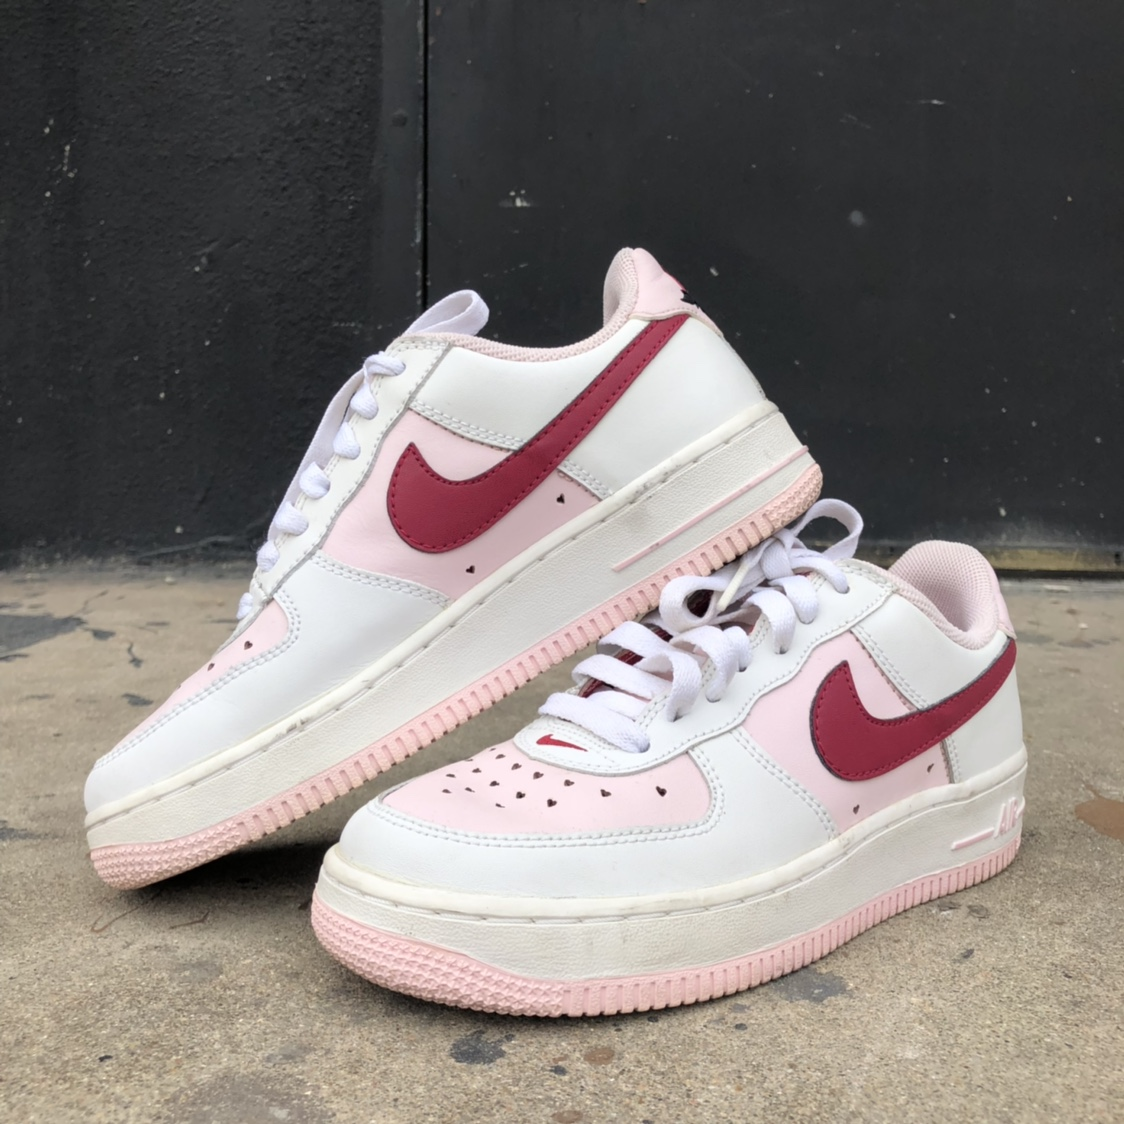 2006 Valentines Day edition Nike Air Force 1's in... - Depop